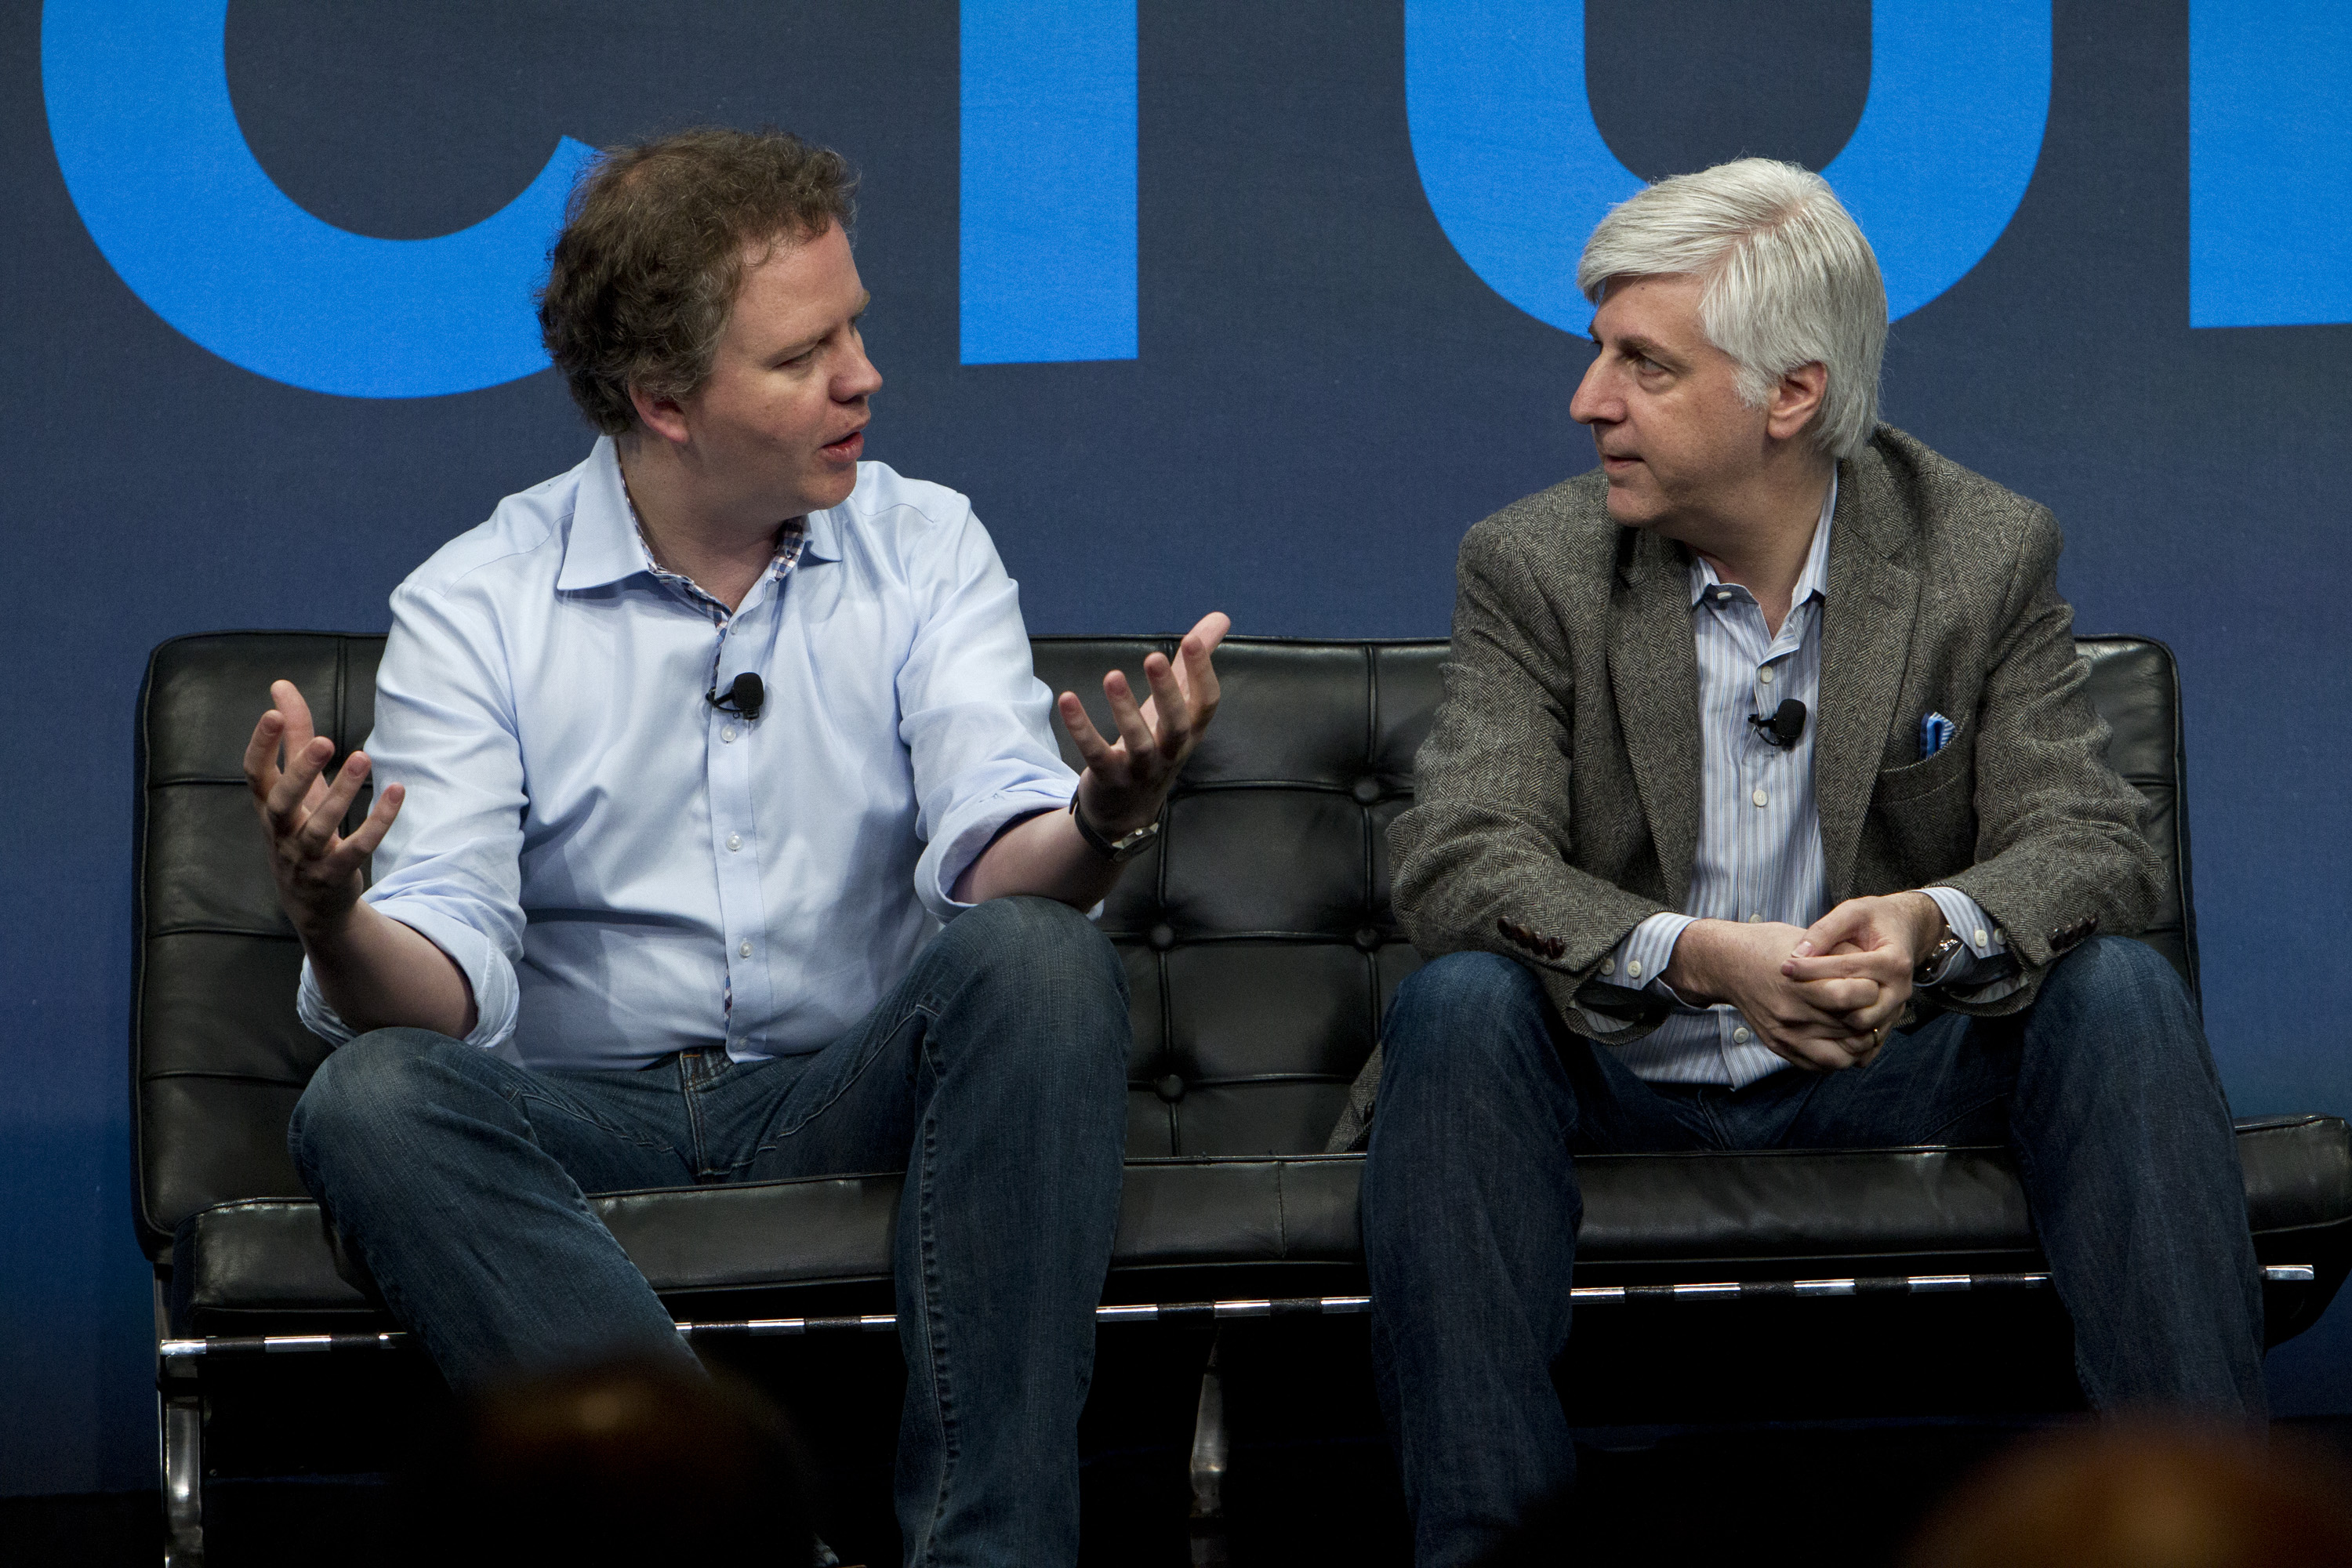 Matthew Prince, cofounder and CEO of CloudFlare, talks with Dan Kaufman, DARPA's director of the Information Innovation Office, at Structure 2014 on July 19 in San Francisco.